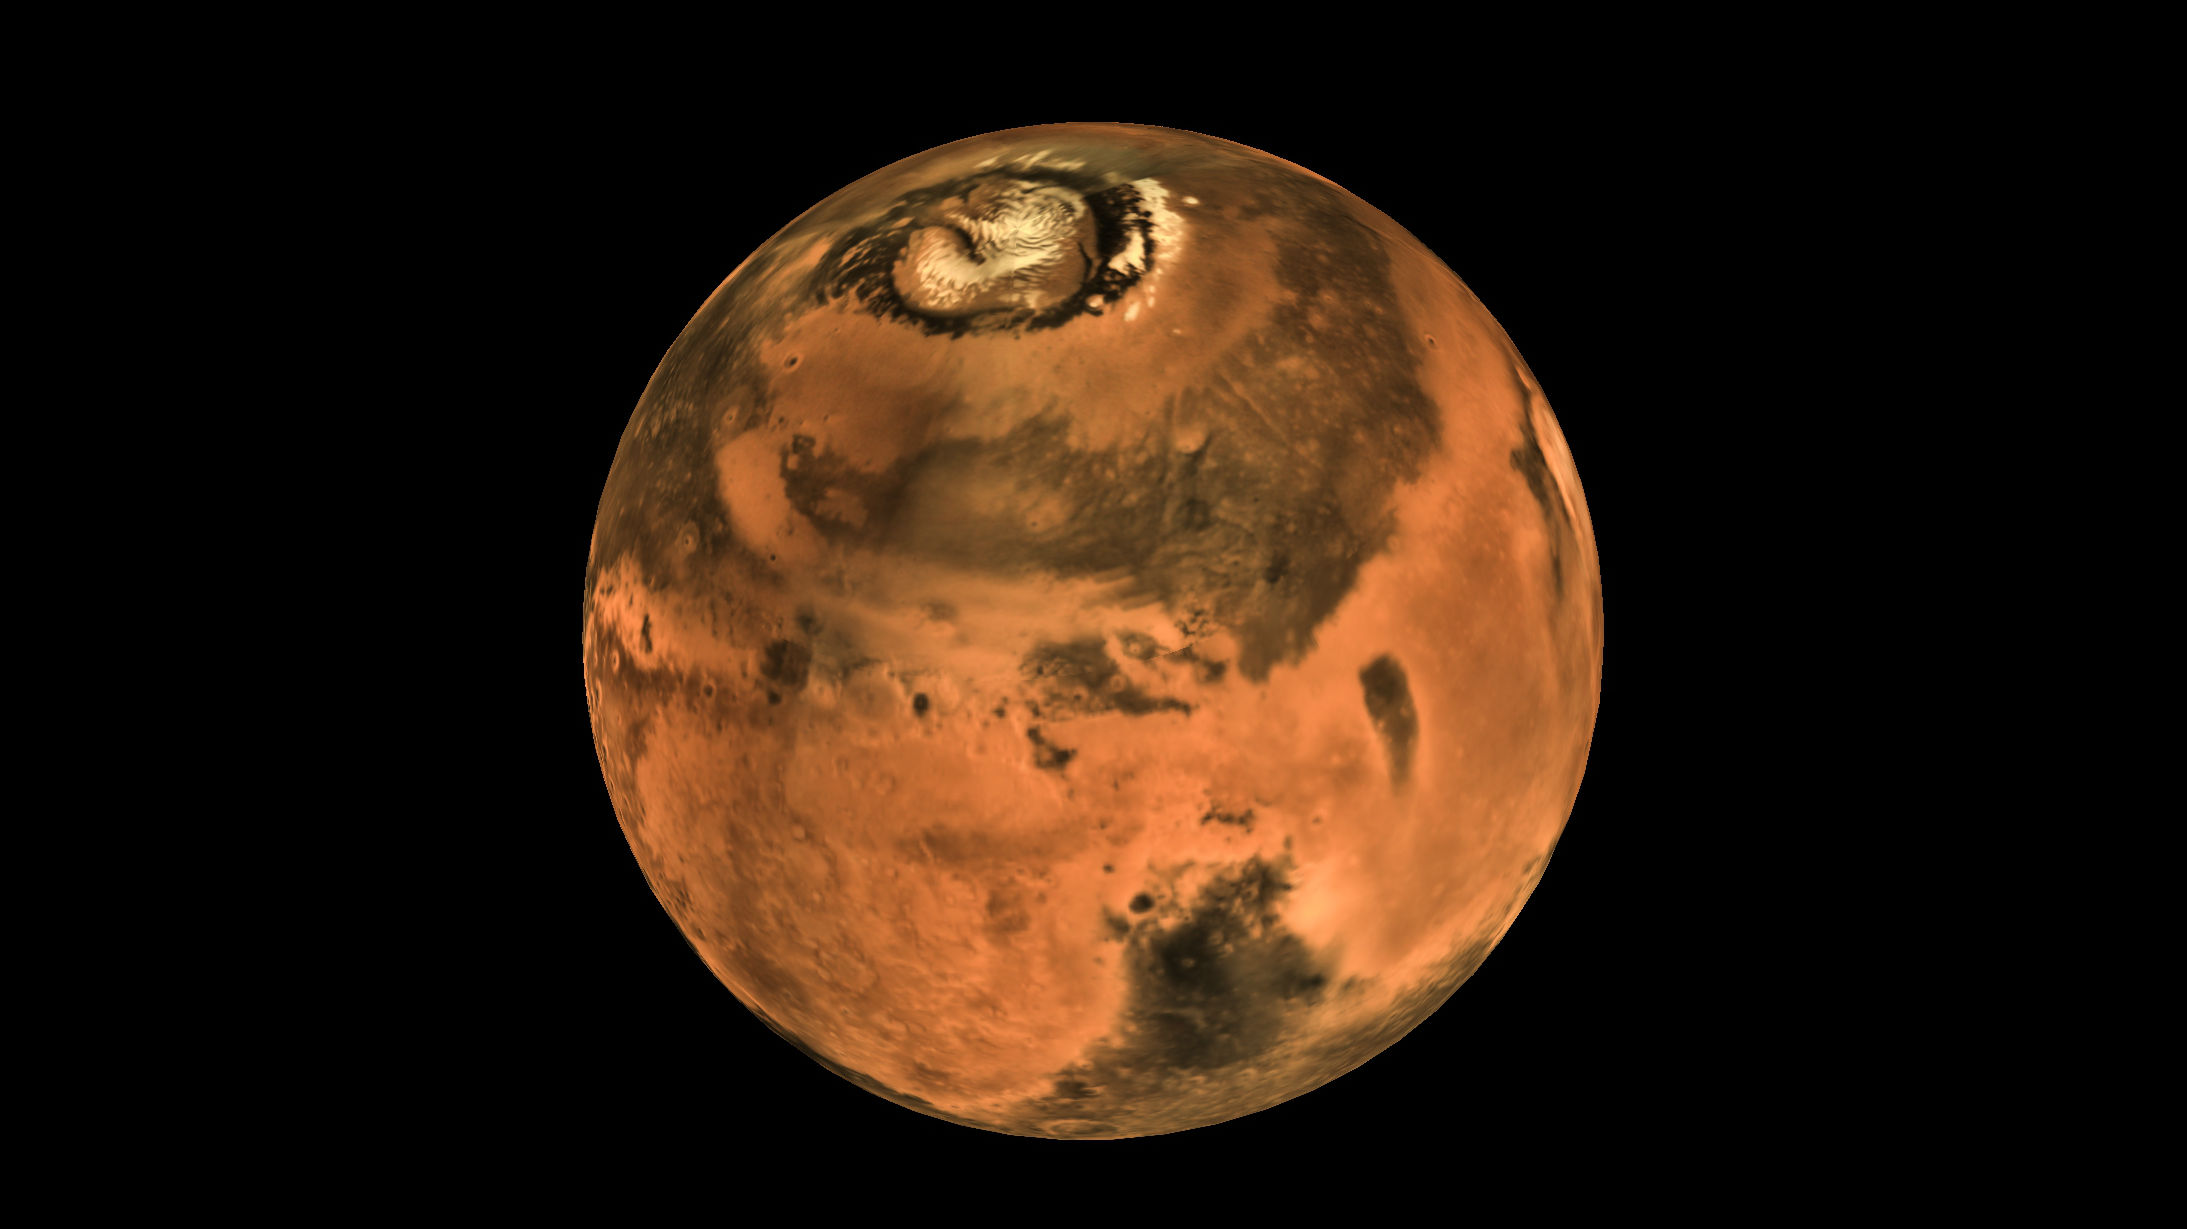 It's been five years since the Indian Space Research Organisation's (ISRO) Mars Orbiter started orbiting the Red Planet. The space craft entered Mars' orbit on September 24, 2014. Take a look at some of the pictures taken by the Mars Colour Camera (MCC). (Image source: ISRO website)